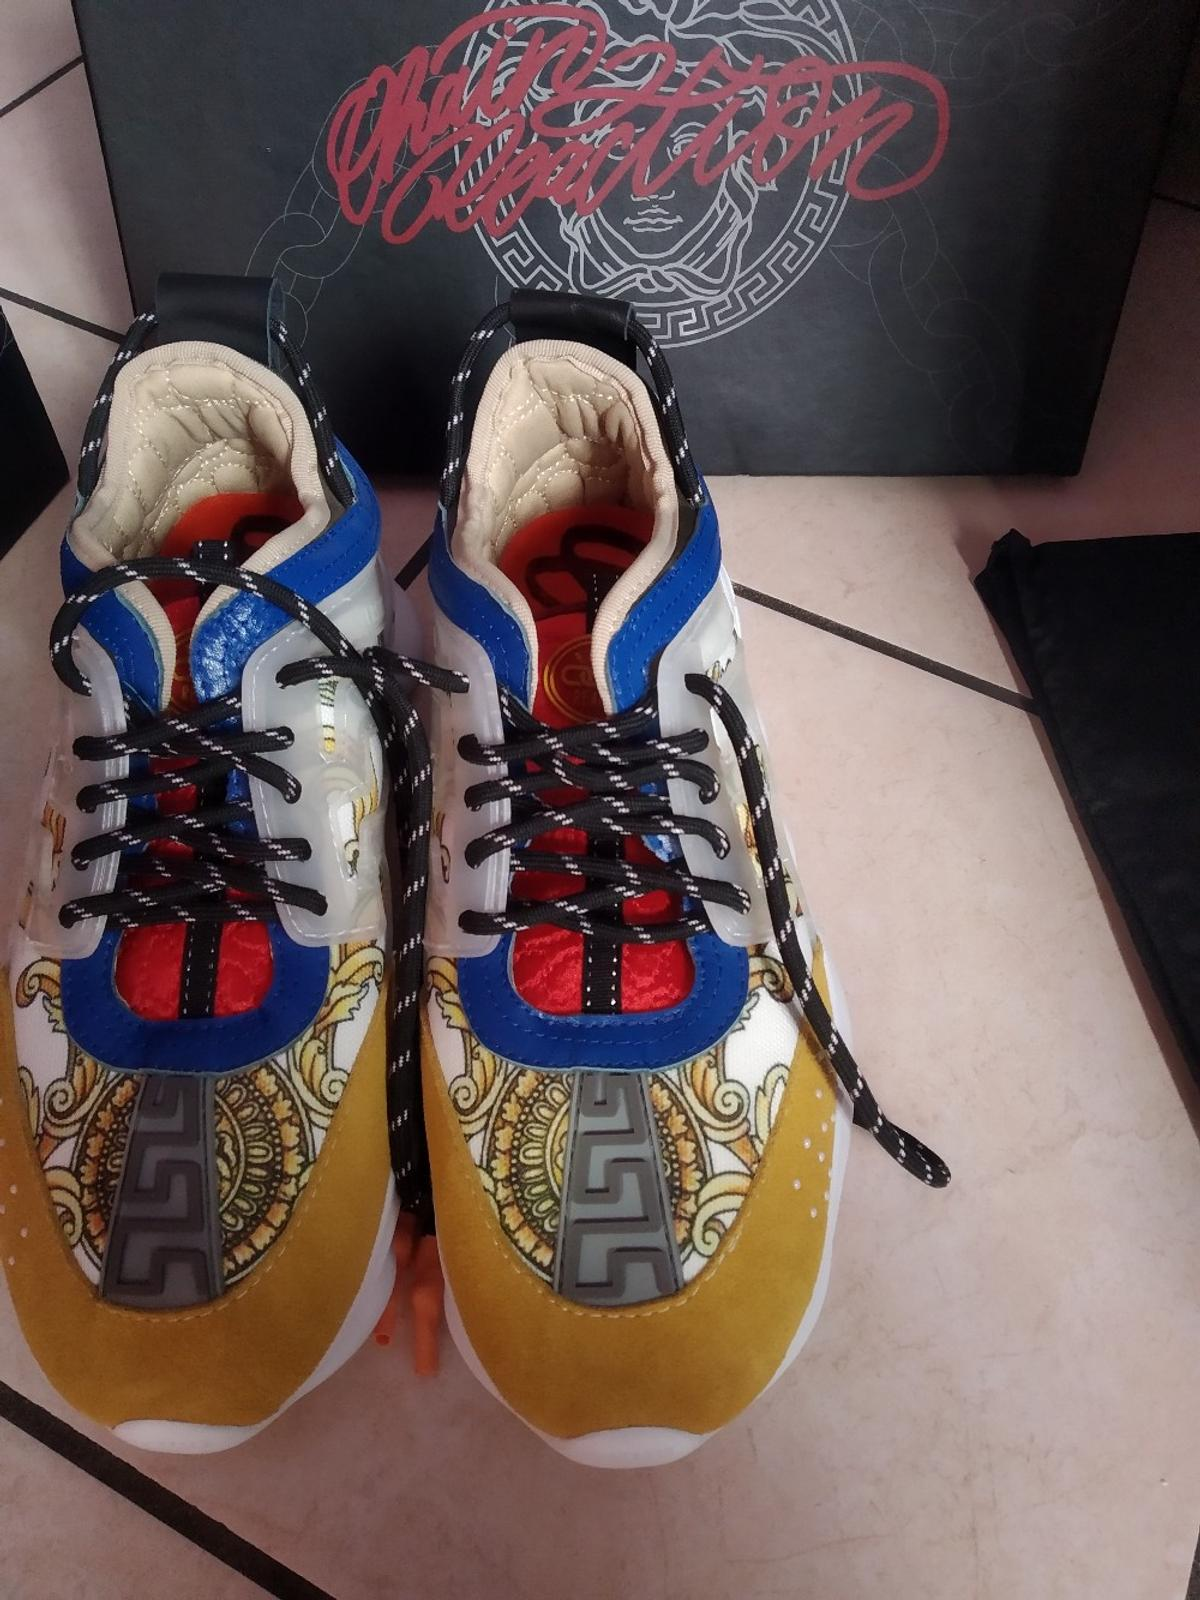 scarpe versace chain reaction in 20135 Milano for €300.00 ...